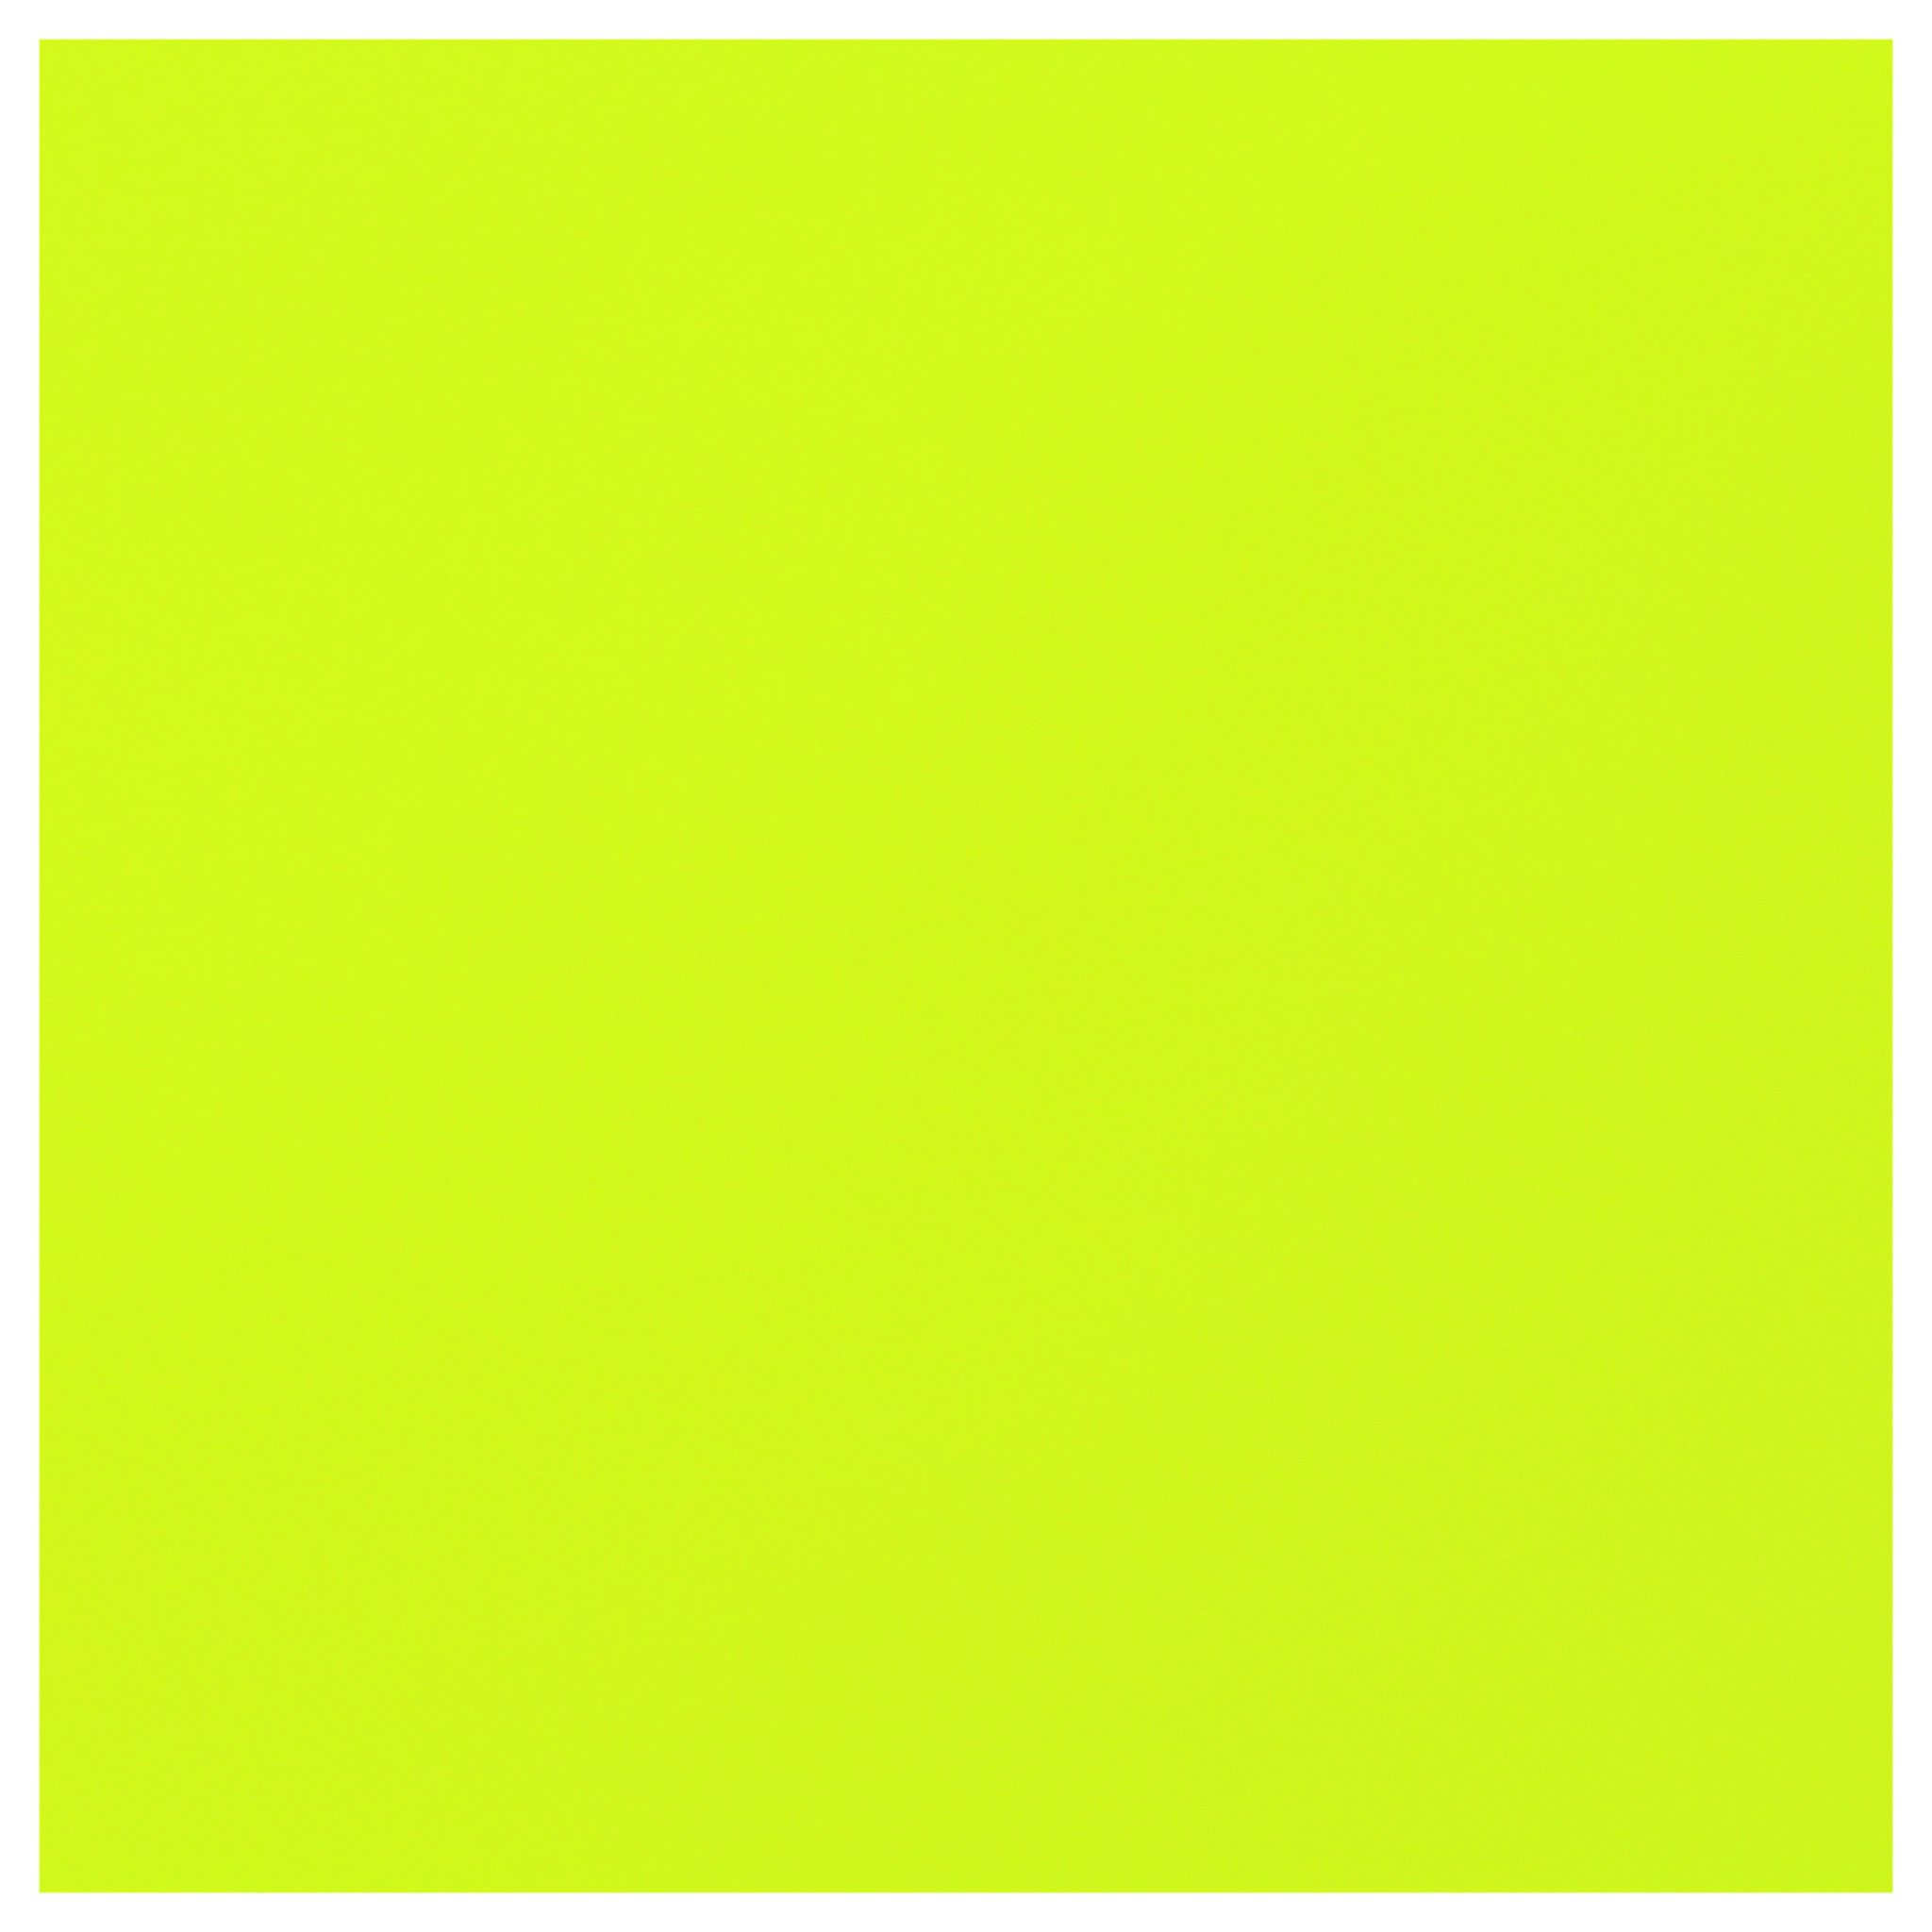 Heat Transfer Vinyl Press HTV 10 x 5 Yards. Neon Yellow